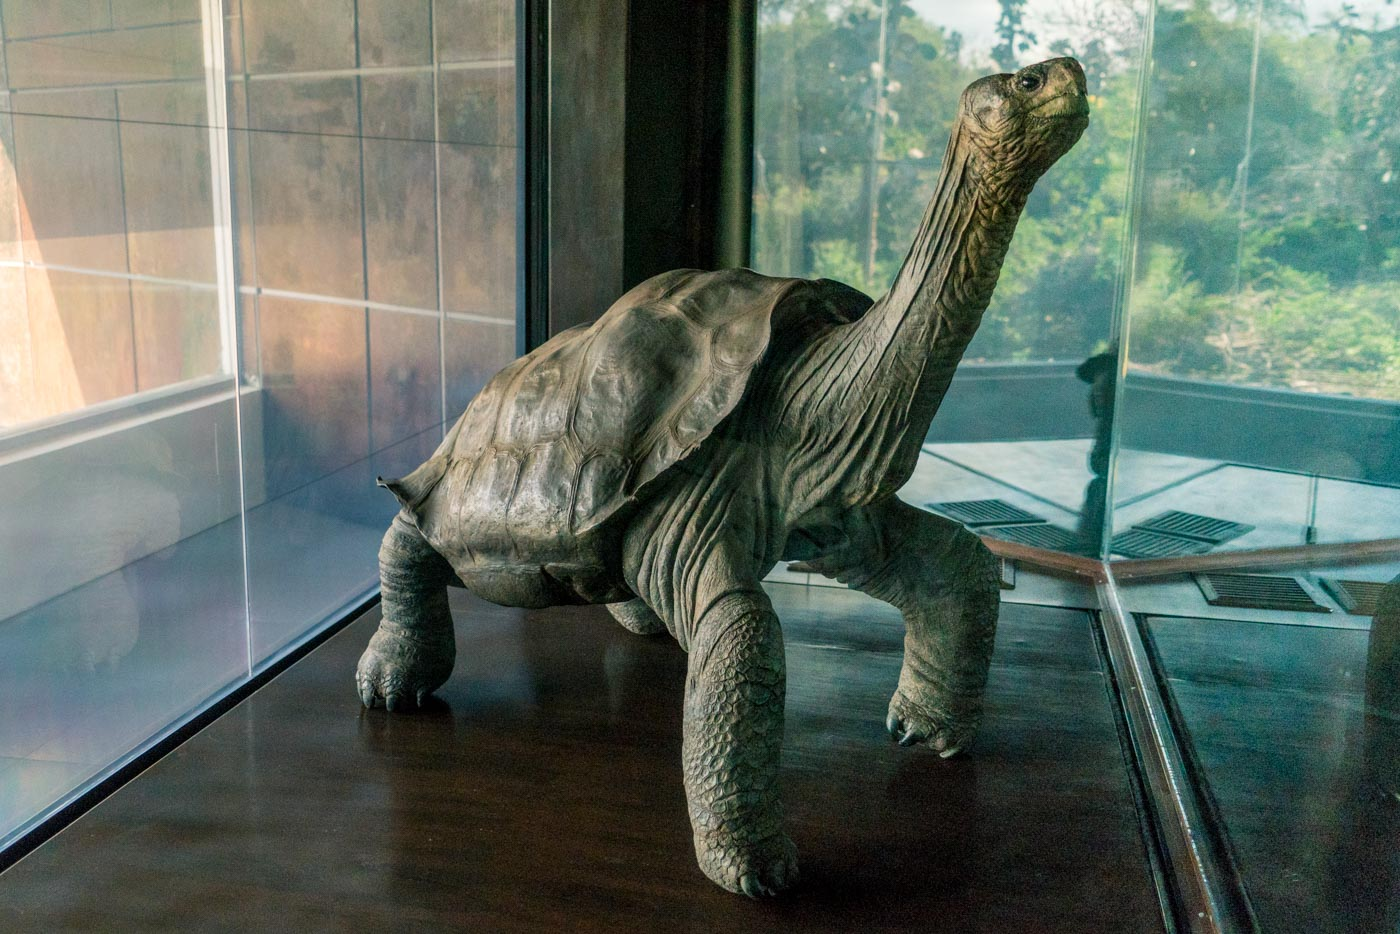 Taxidermy of Lonesome George on displays at the Charles Darwin Research Station